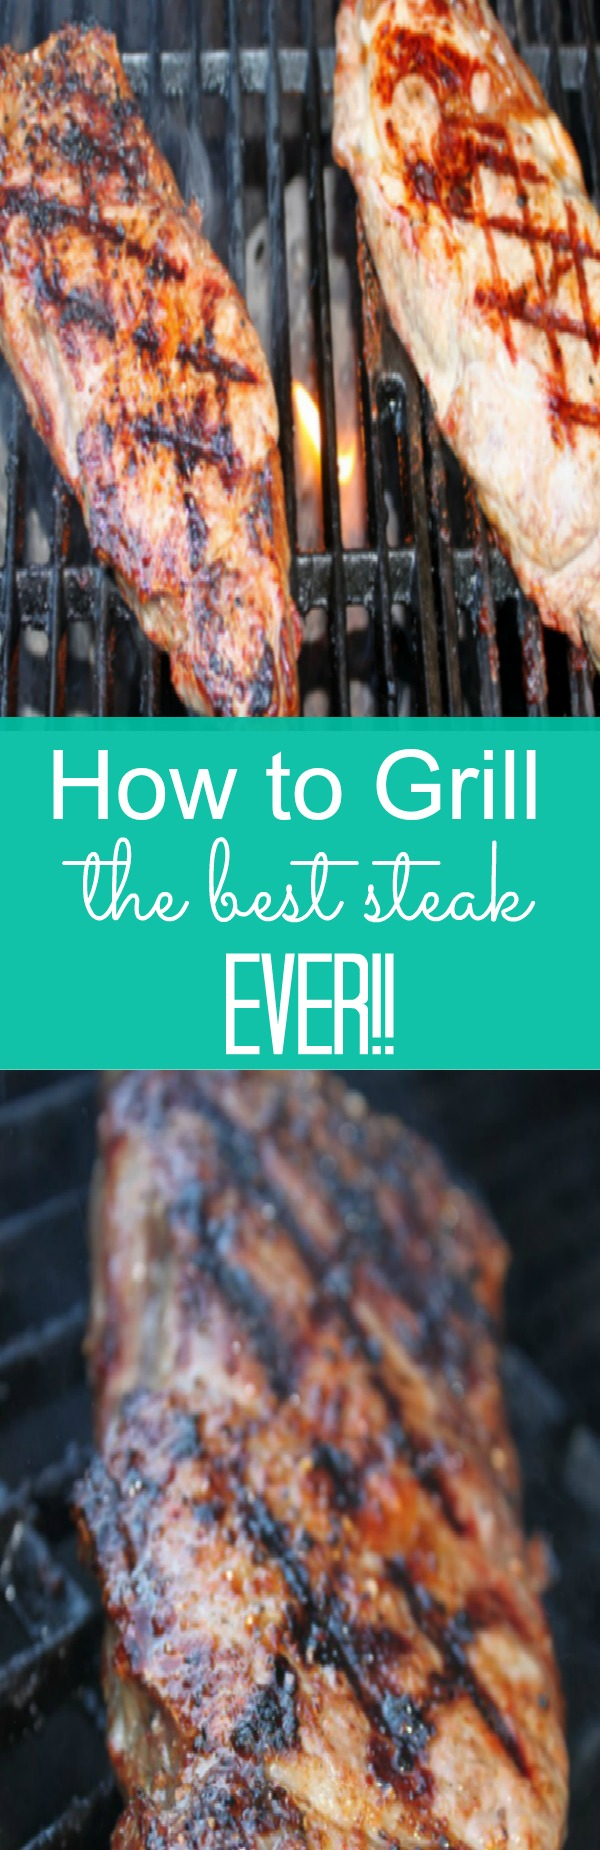 how to grill the best steak